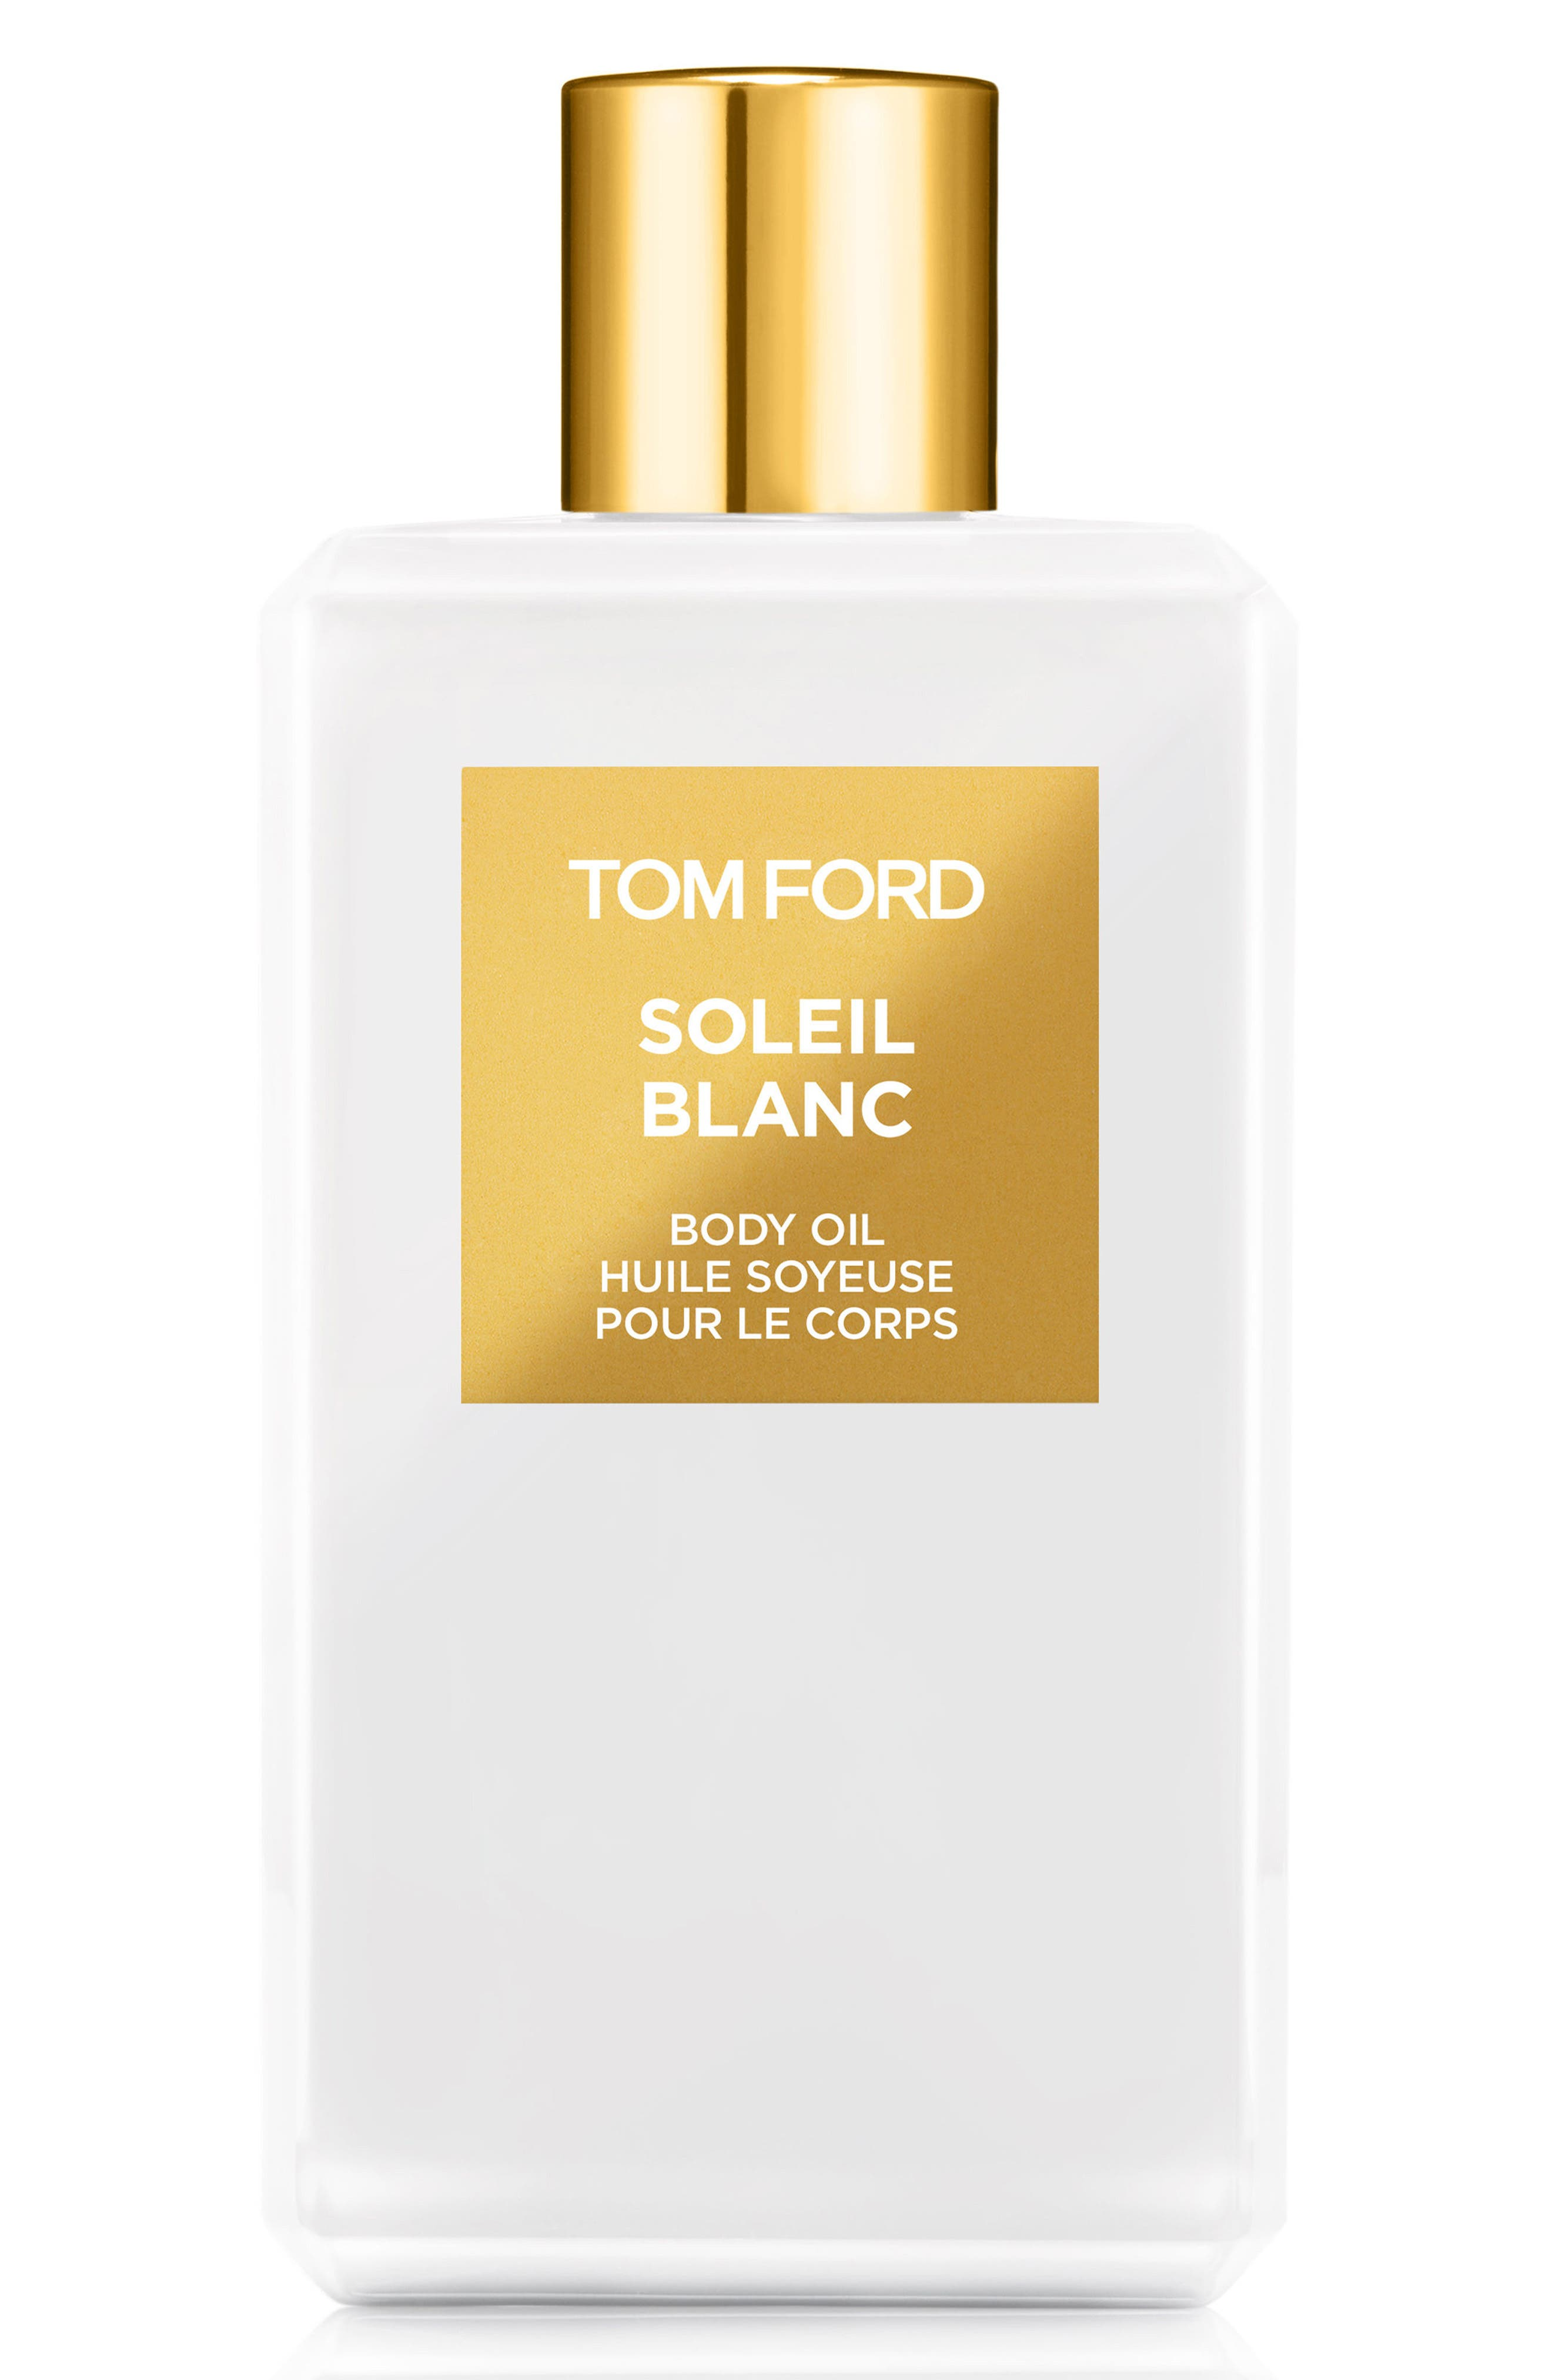 Tom Ford Private Blend Soleil Blanc Body Oil